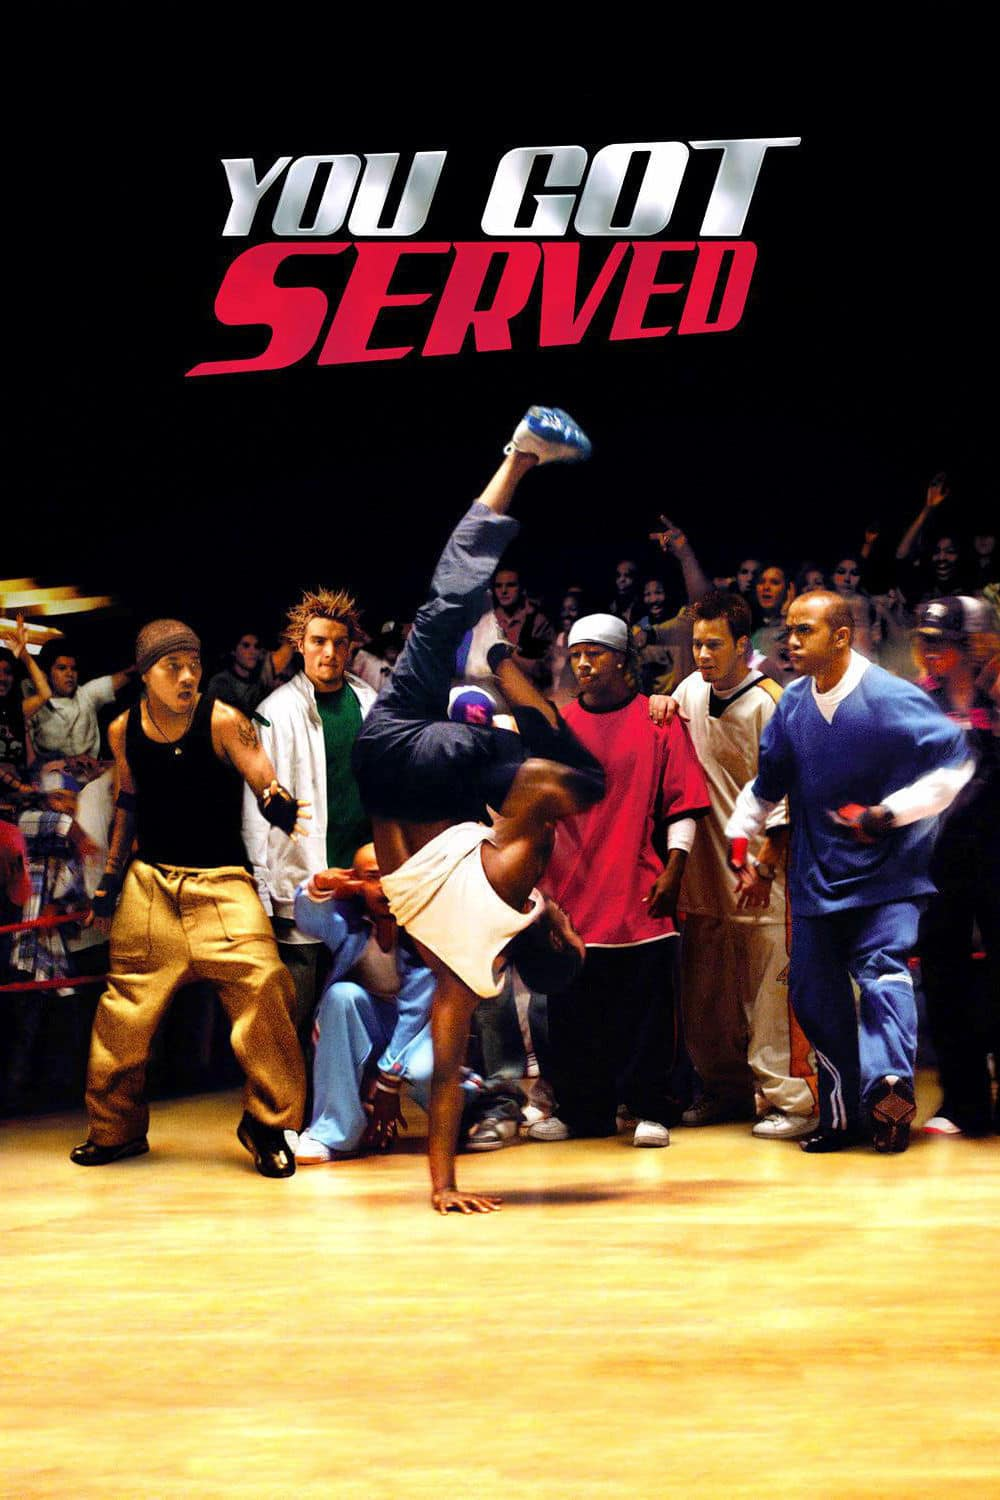 You Got Served, 2004